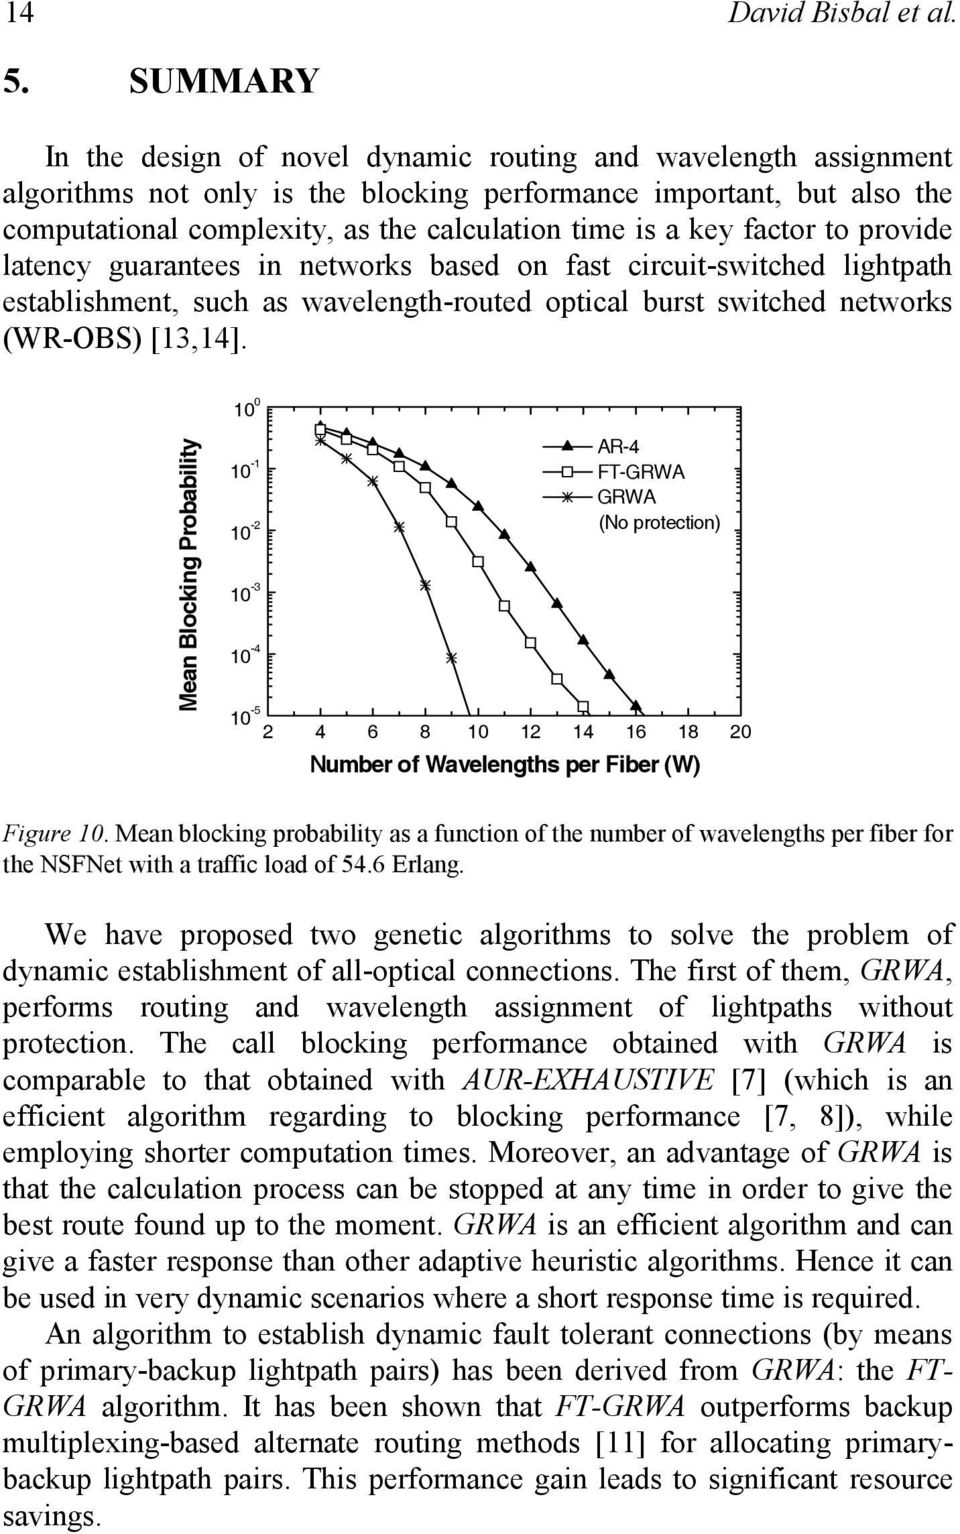 key factor to provide latency guarantees in networks based on fast circuit-switched lightpath establishment, such as wavelength-routed optical burst switched networks (WR-OBS) [13,14].